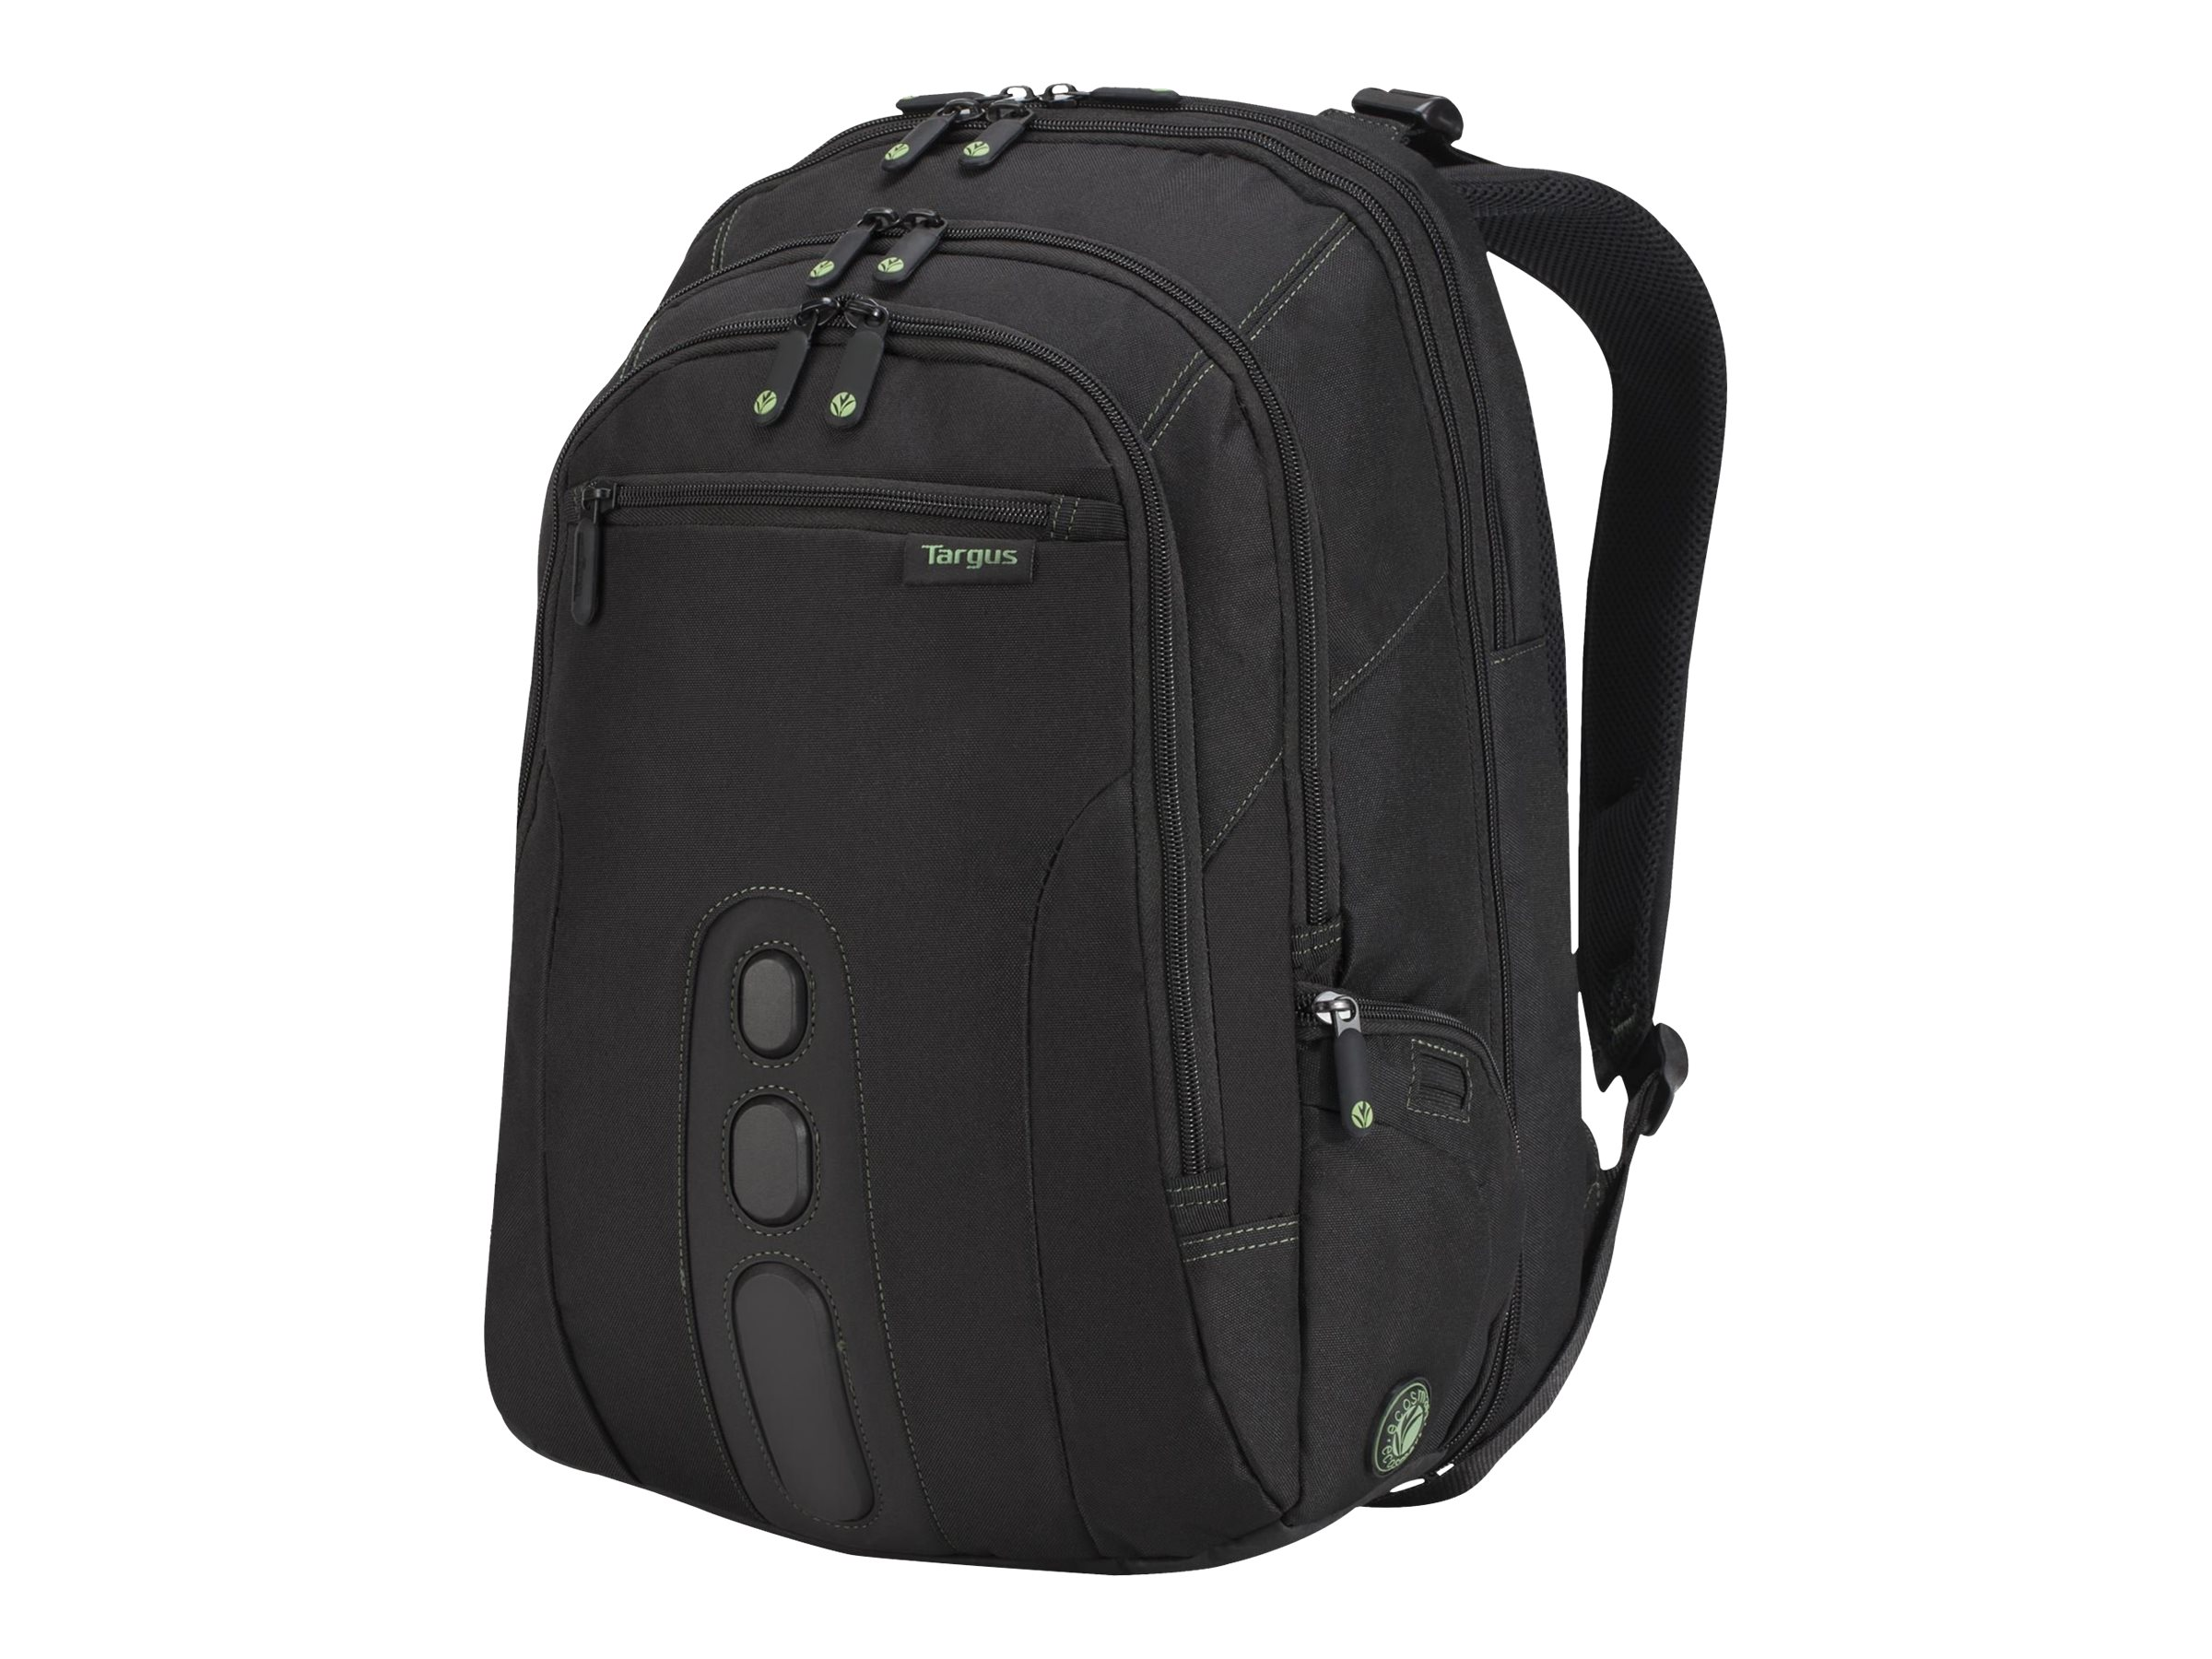 Targus Backpack Spruce Ecosmart 17 notebook